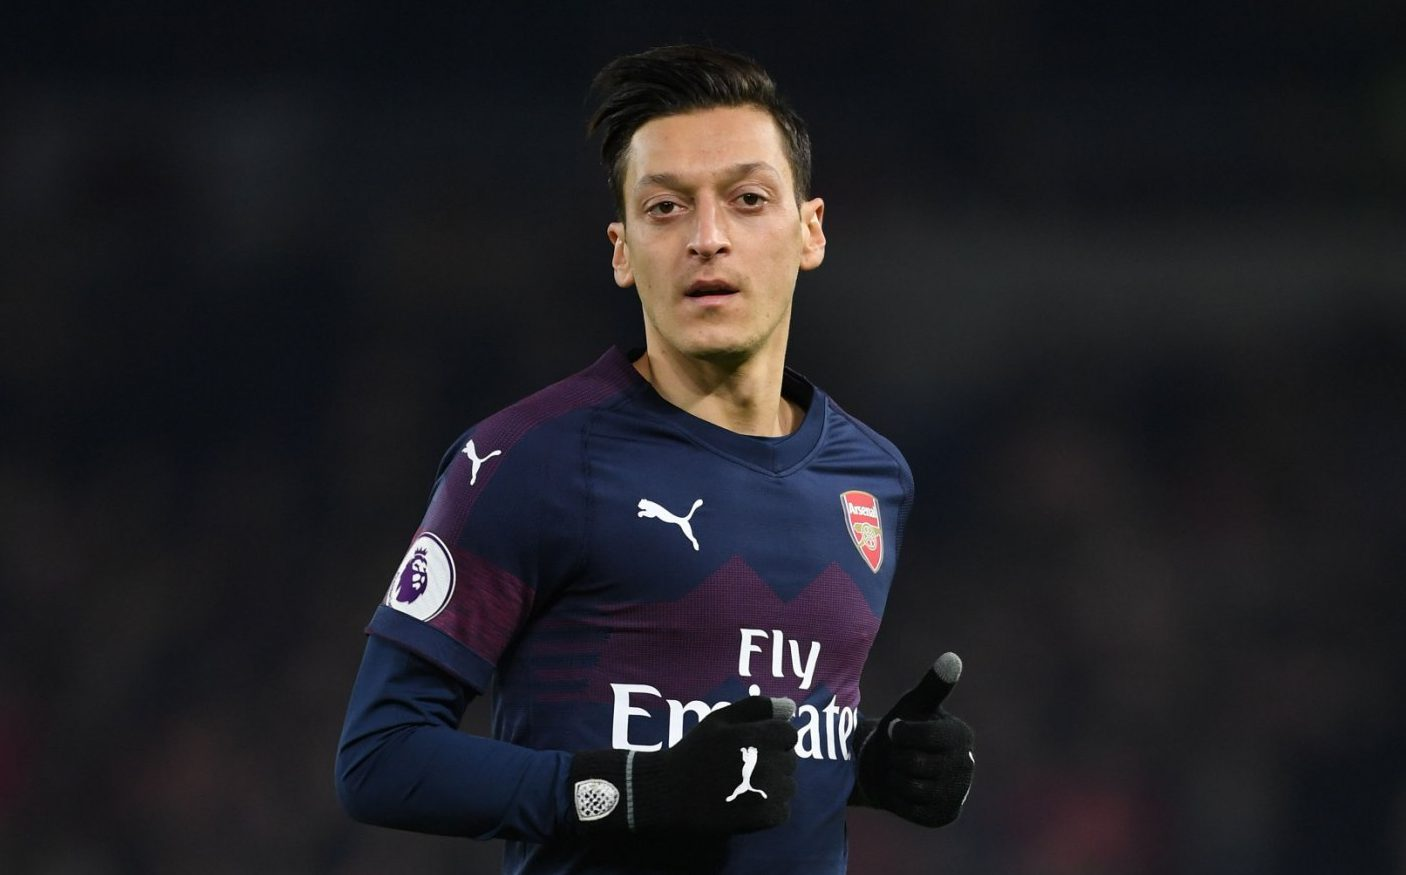 BRIGHTON, ENGLAND - DECEMBER 26: Mesut Ozil of Arsenal during the Premier League match between Brighton & Hove Albion and Arsenal FC at American Express Community Stadium on December 26, 2018 in Brighton, United Kingdom. (Photo by Stuart MacFarlane/Arsenal FC via Getty Images)